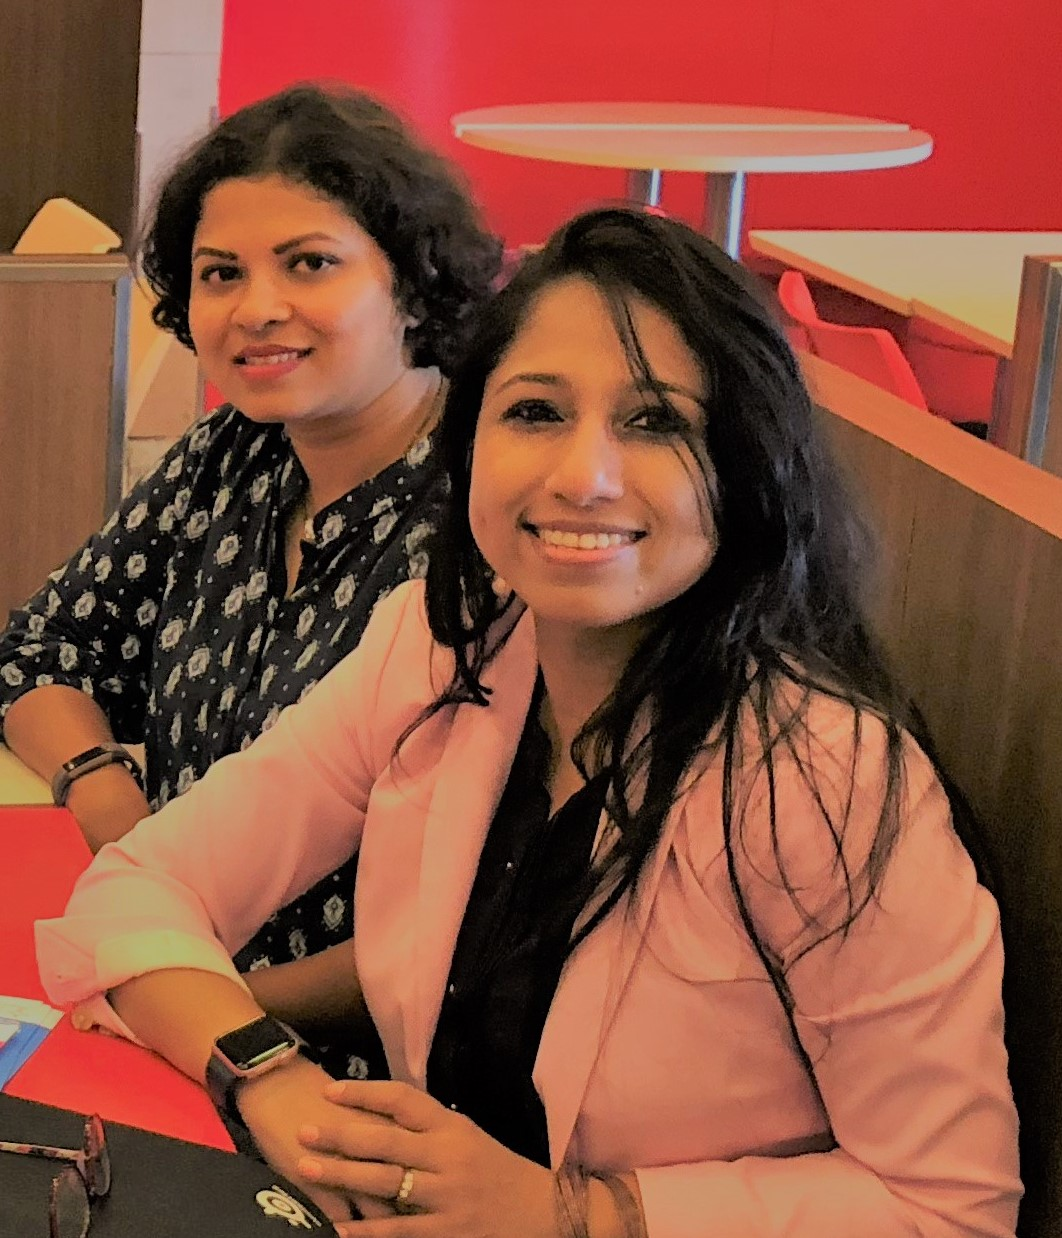 Collaborator: Dr. Chethana Thirthahalli, Medical Officer, Indian Cancer Society, Bangalore- Extremely thankful to her for collaboration on awareness, education and research. Looking forward to our research work to understand the scenario of Breast Cancer in India.